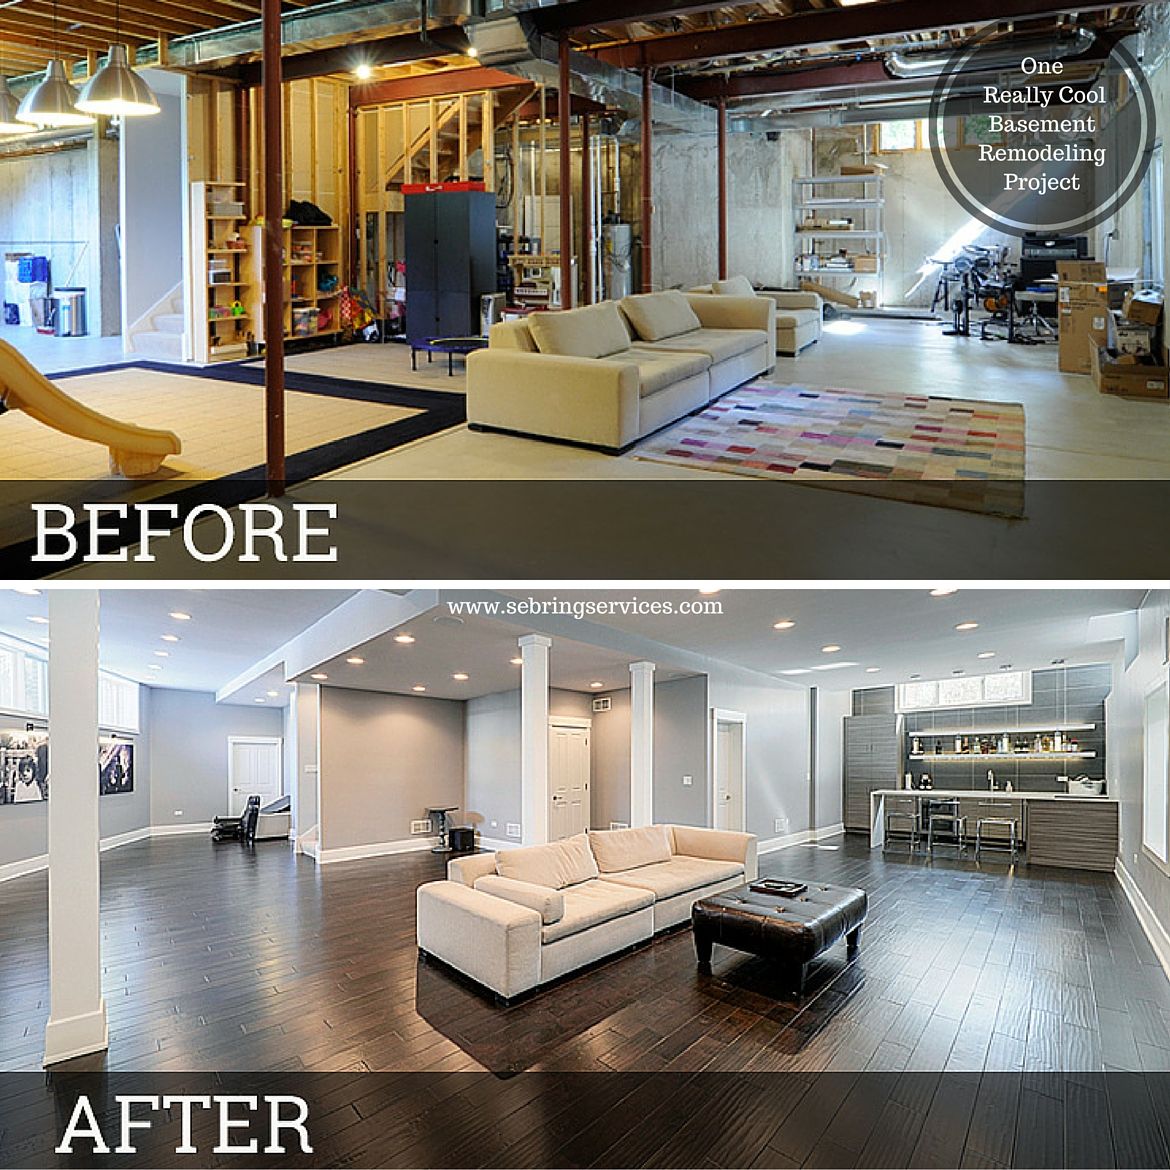 One Really Cool Basement Remodeling Naperville Sebring Services & Before u0026 After: One Really Cool Basement Remodeling Project | Home ...